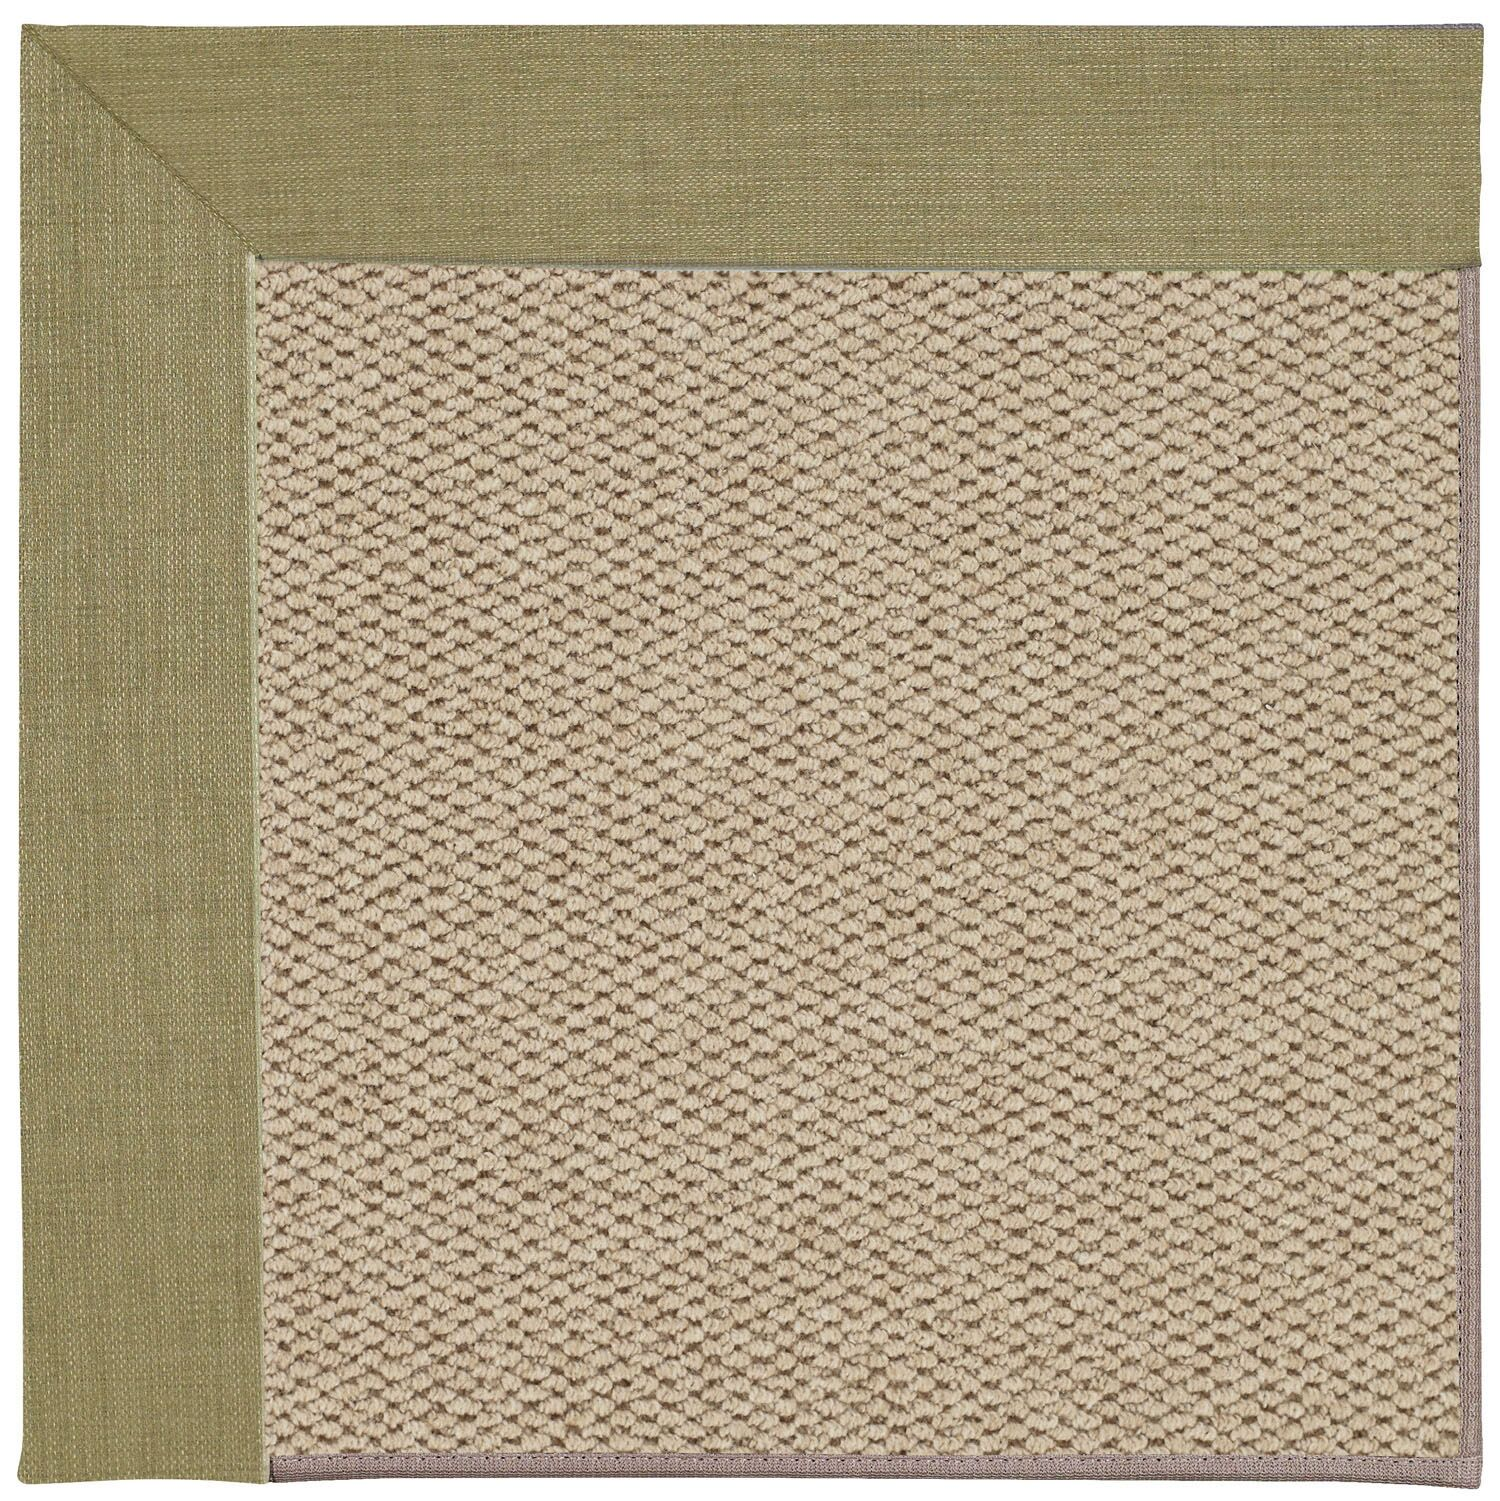 Barrett Champagne Machine Tufted Basil/Beige Area Rug Rug Size: Square 6'